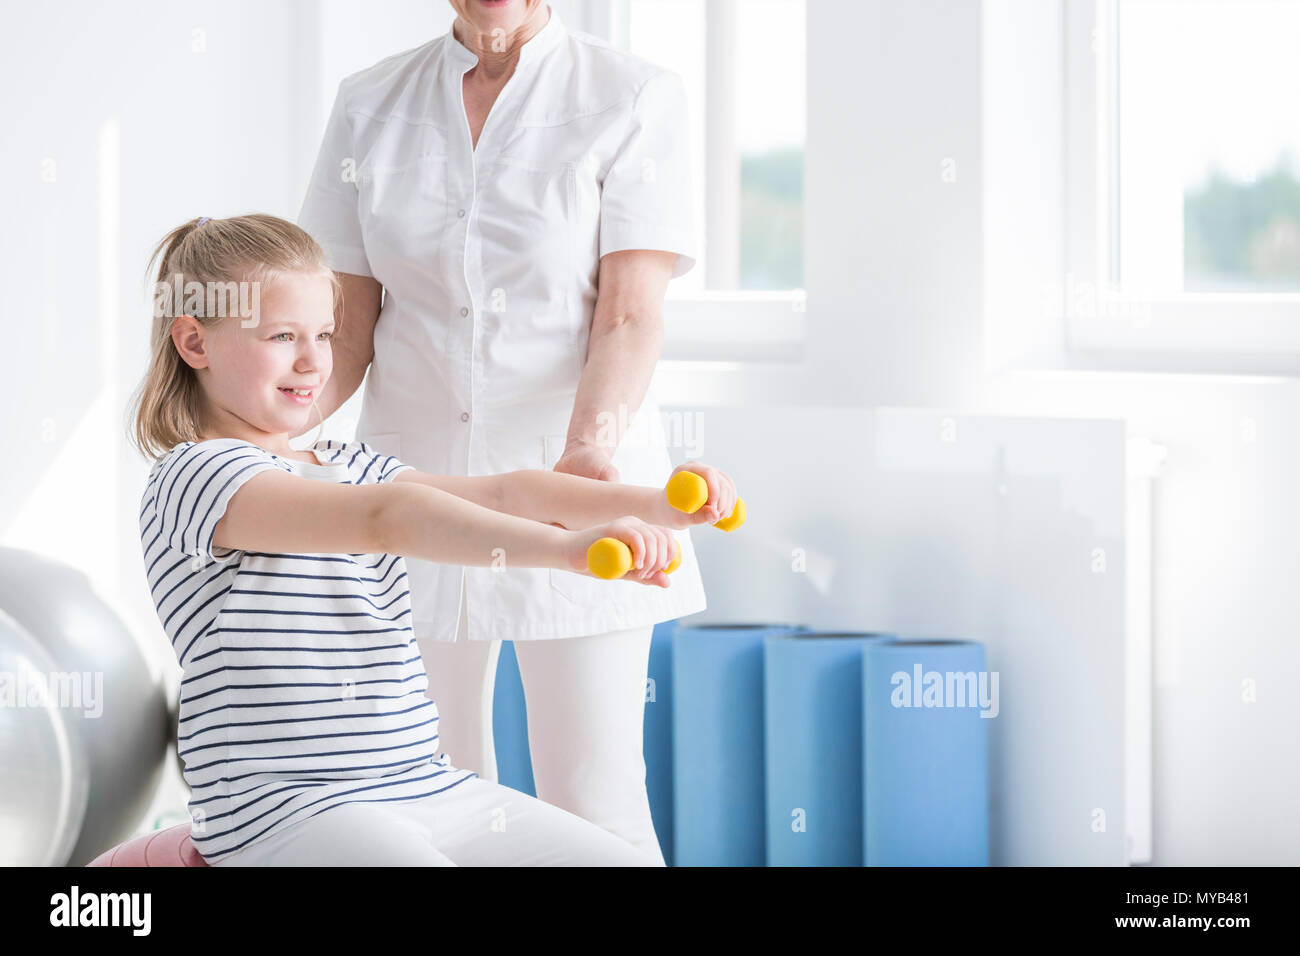 Physiotherapist and child exercising with yellow dumbbells in rehabilitation room - Stock Image